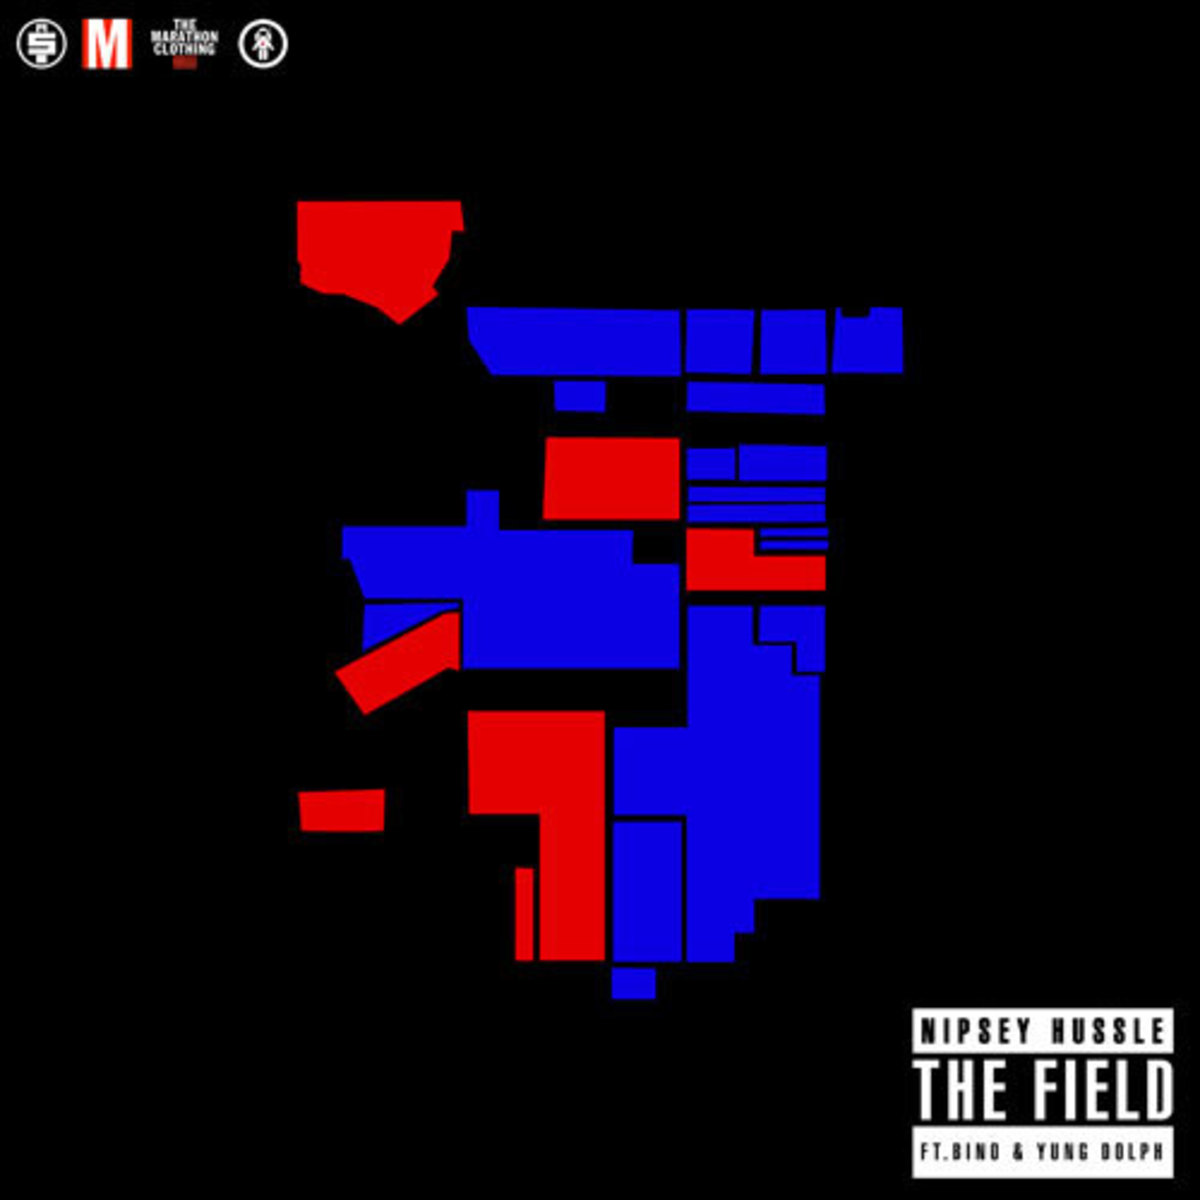 nipsey-hussle-the-field.jpg